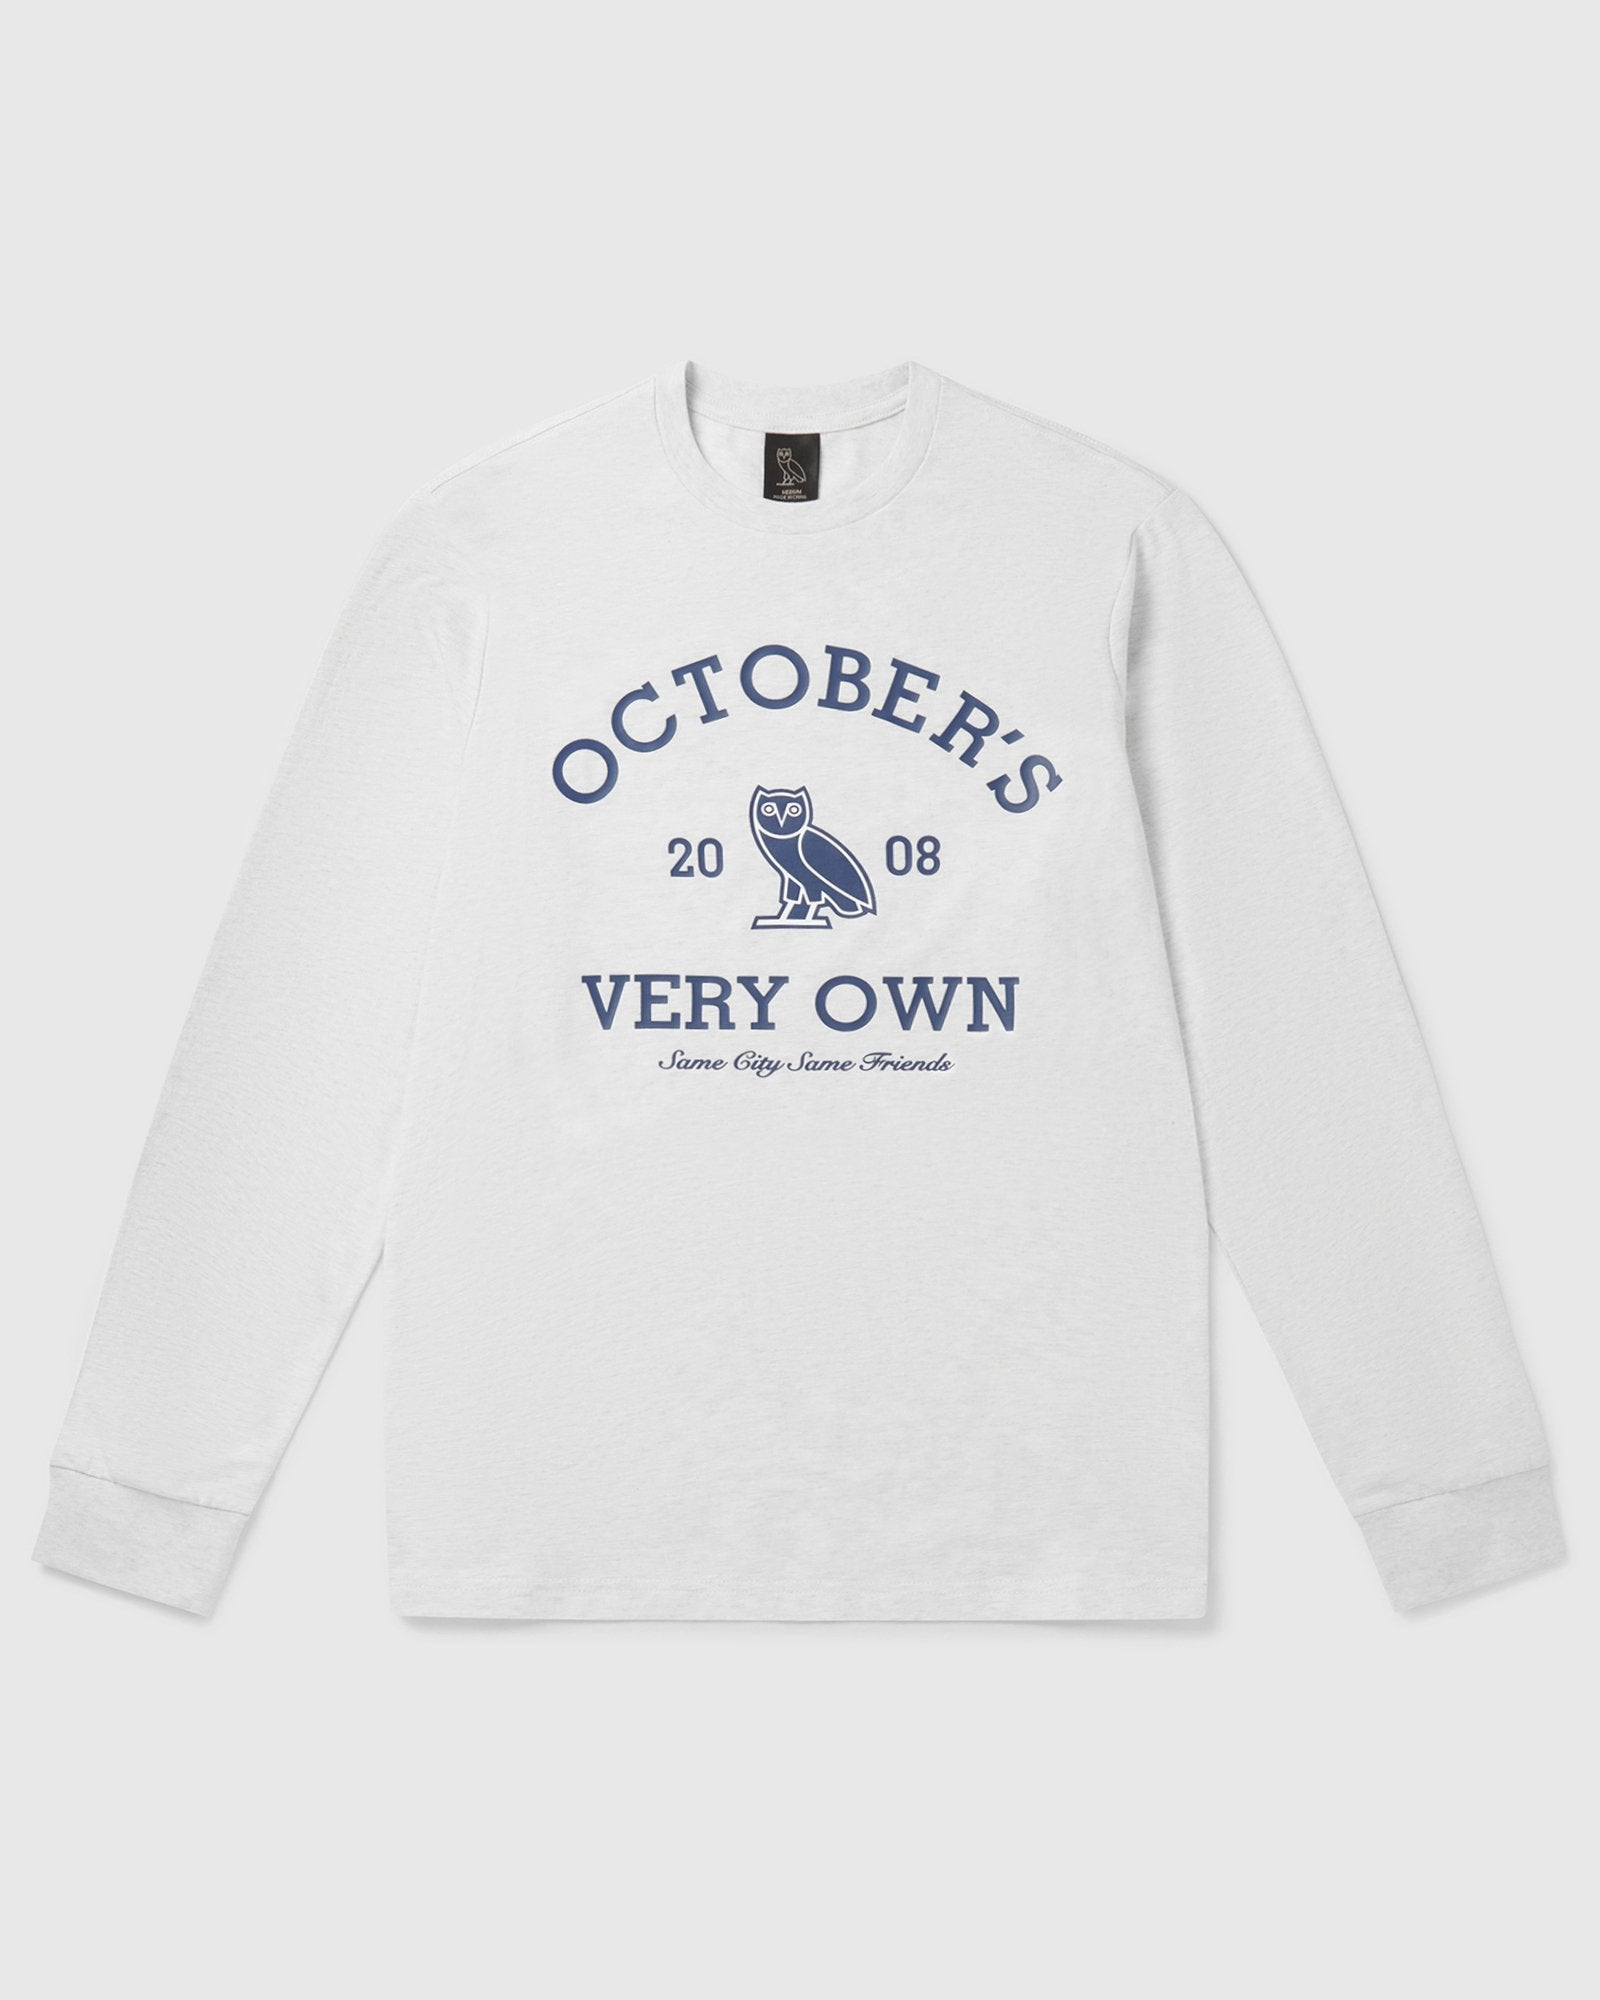 OVO COLLEGIATE LONGSLEEVE T-SHIRT - ASH HEATHER GREY IMAGE #1